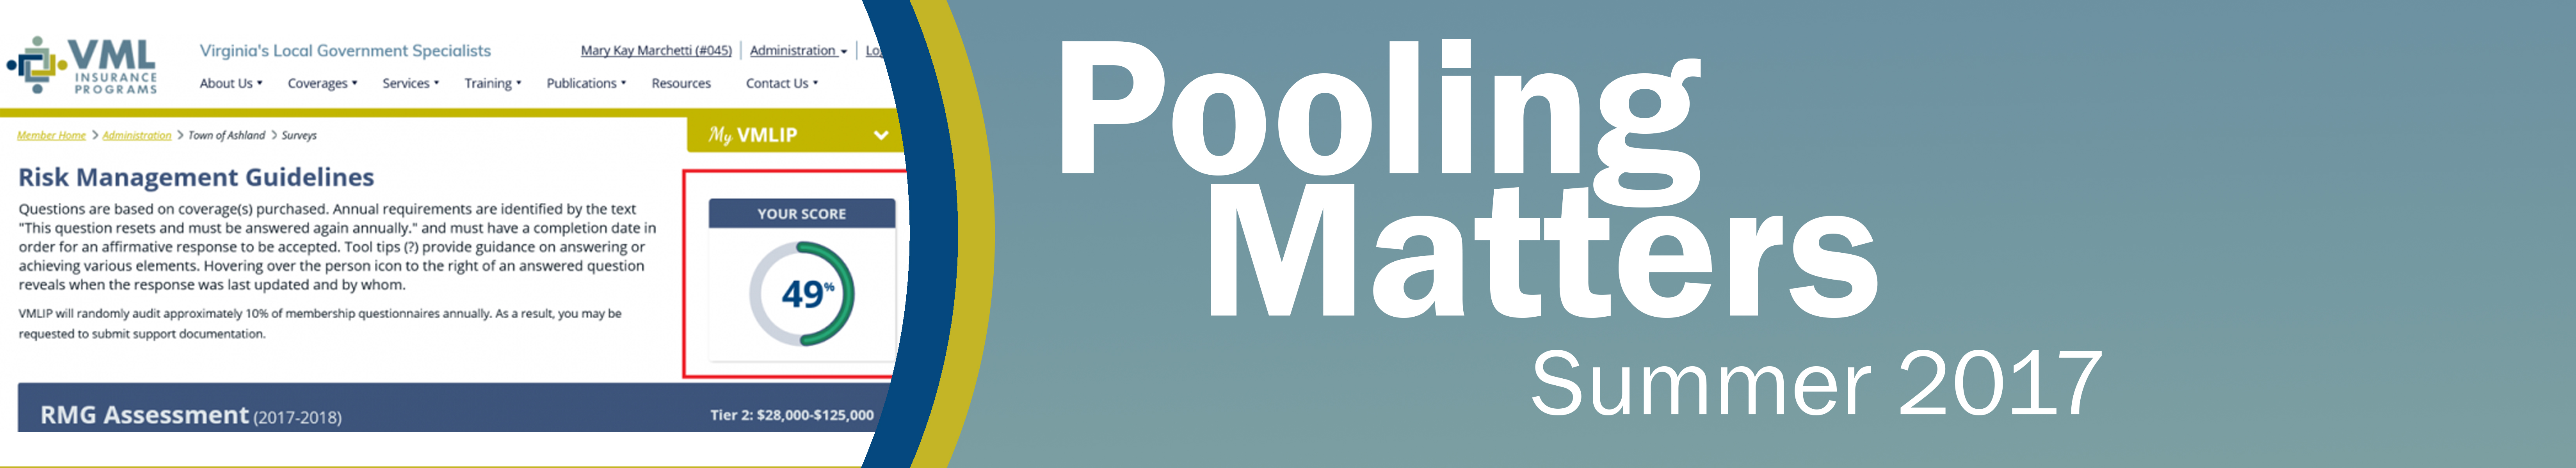 Pooling Matters: 2017 Summer Issue